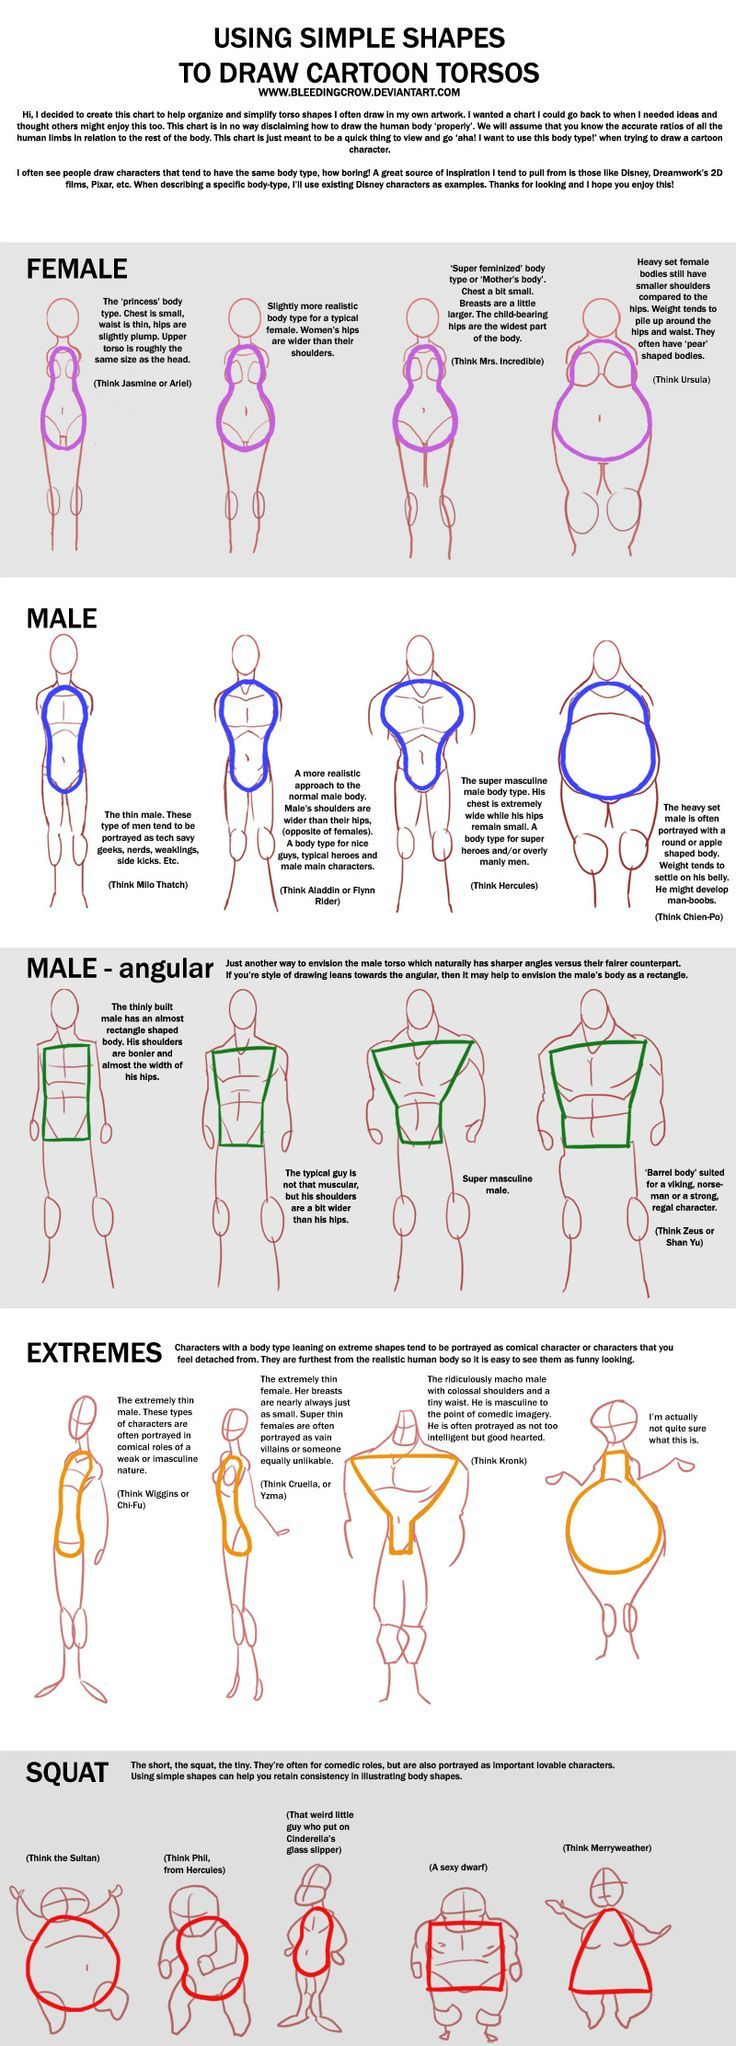 Chart Cartoon Torso Drawing People Anatomy Reference Design Reference